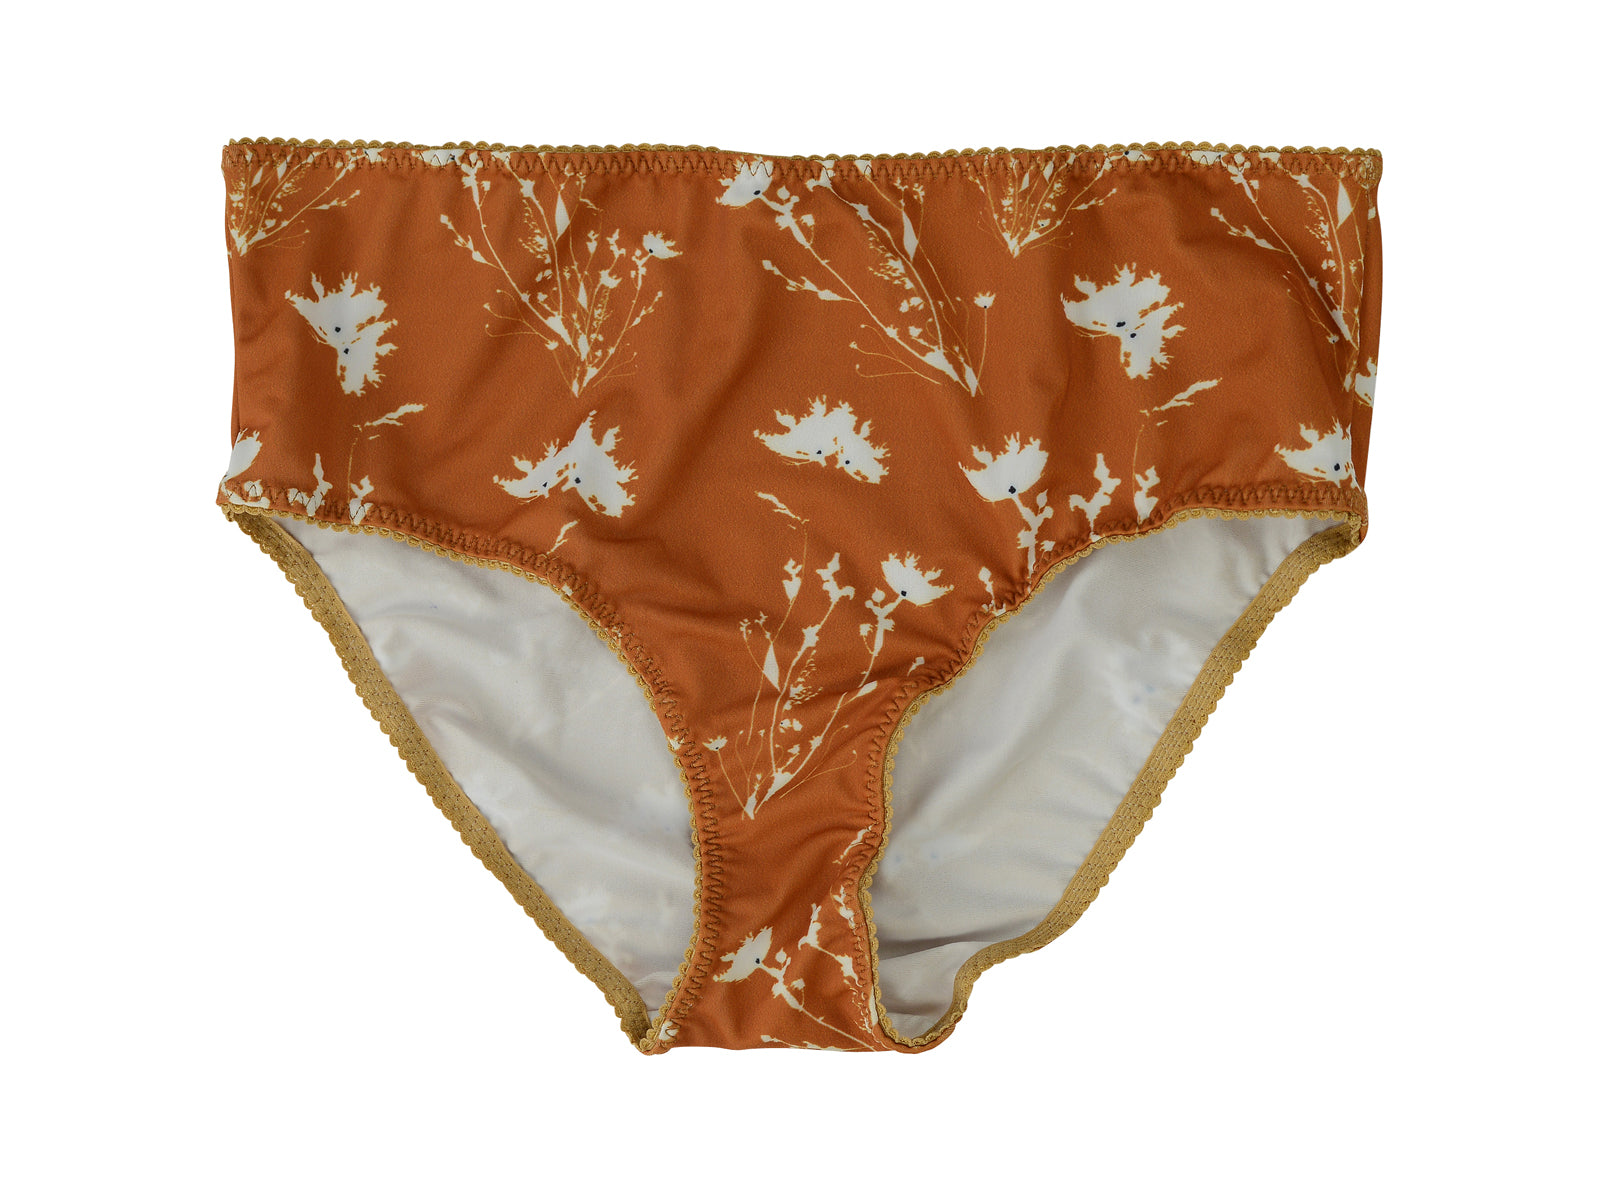 KAMA High Waisted Bottoms